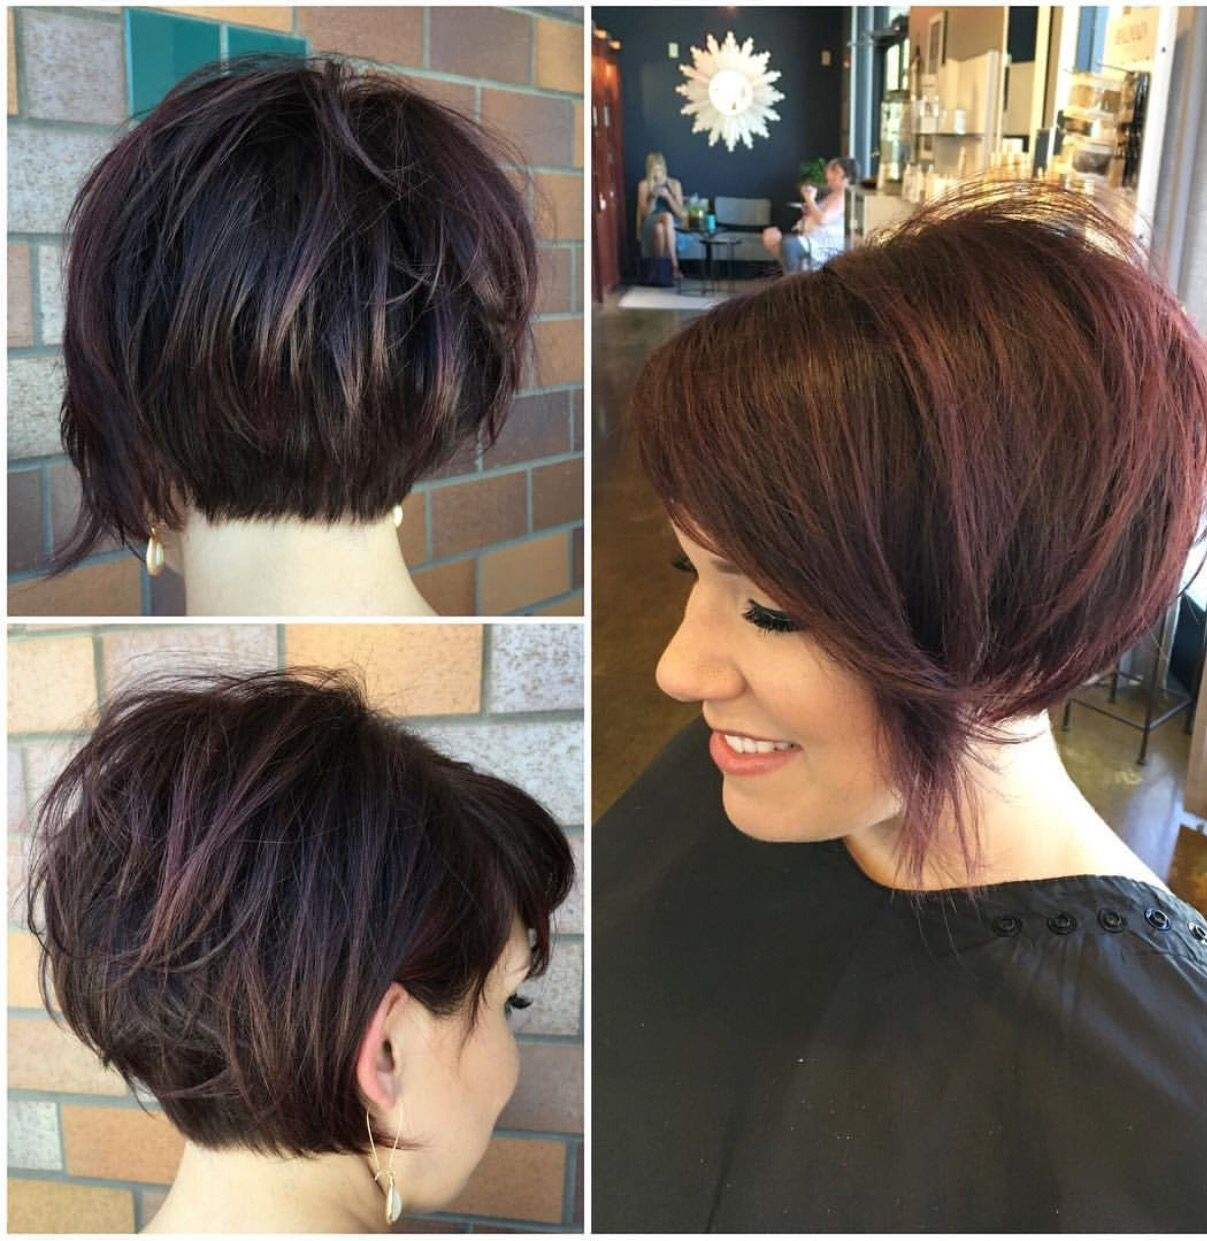 If I Decide To Grow Out My Undercut | Hair ❤️ | Short Hair intended for Cutting The Undercut To Make A Bob